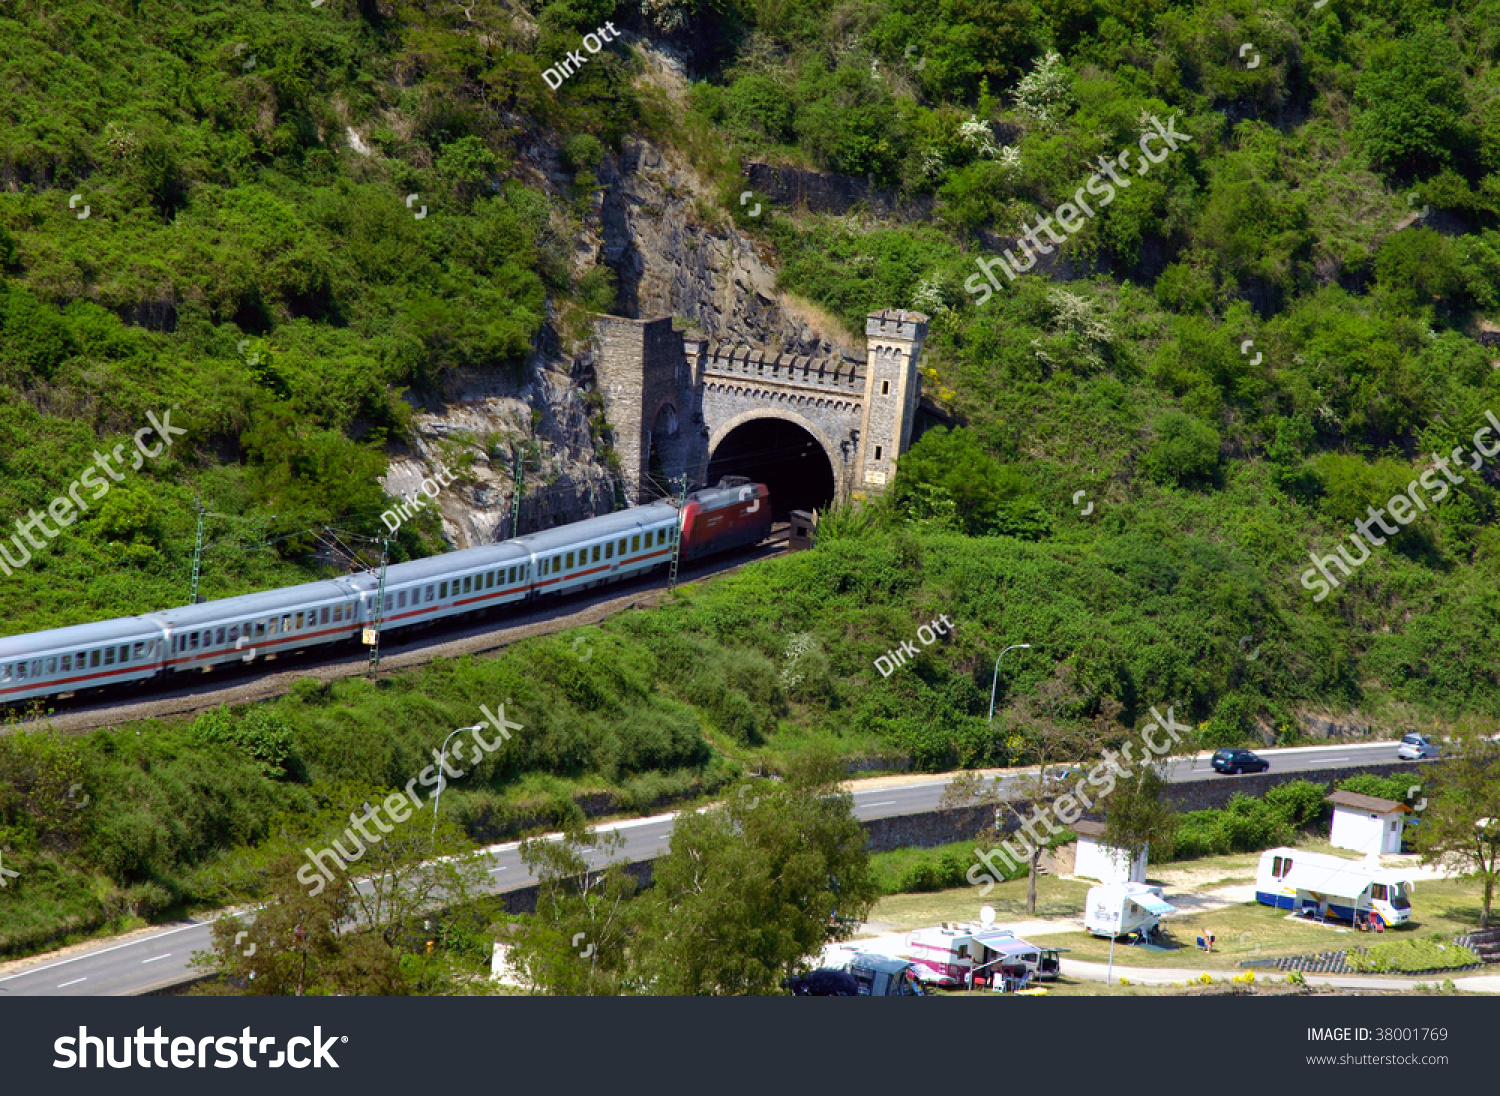 Train Location Germany Rhine River Stock Photo Shutterstock - Rhine river location